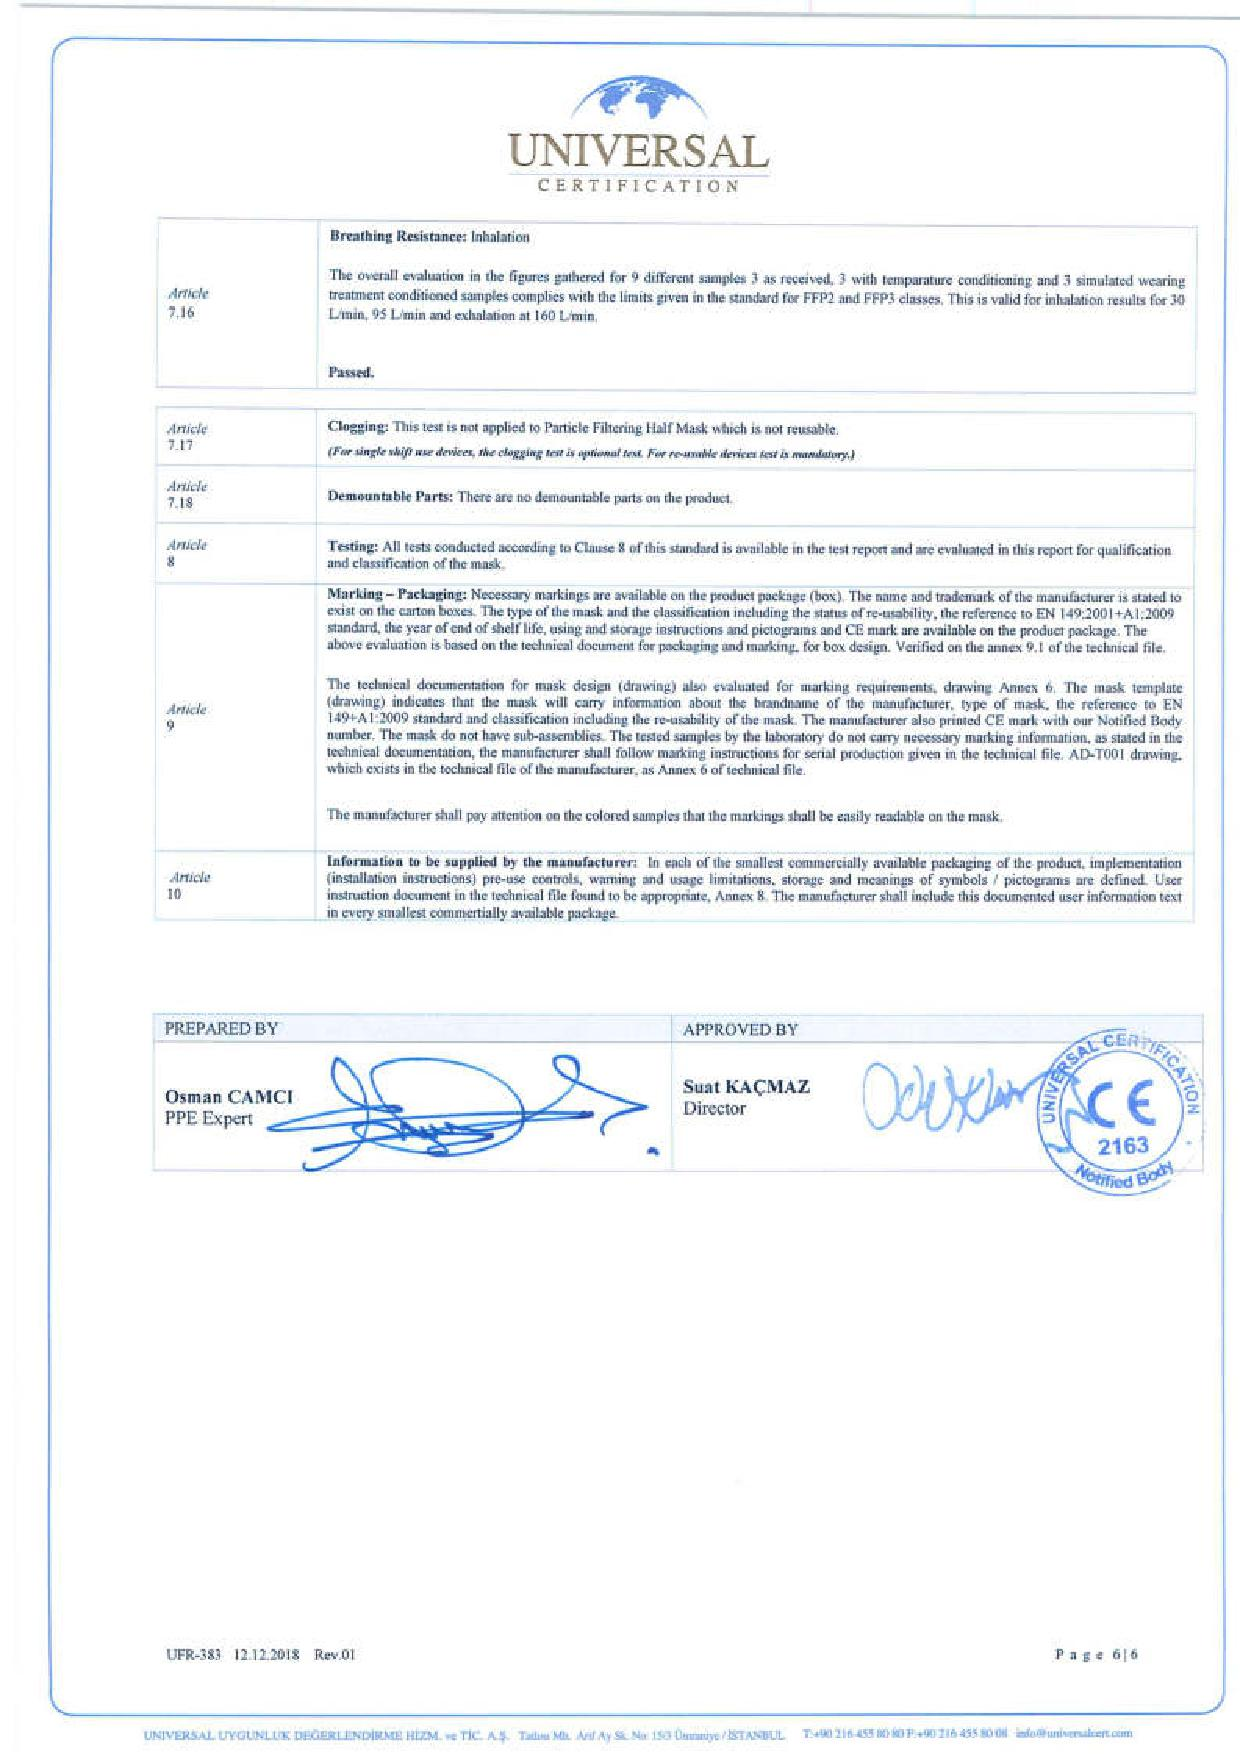 AnDum_NB2163_AD-T001-page-008.jpg